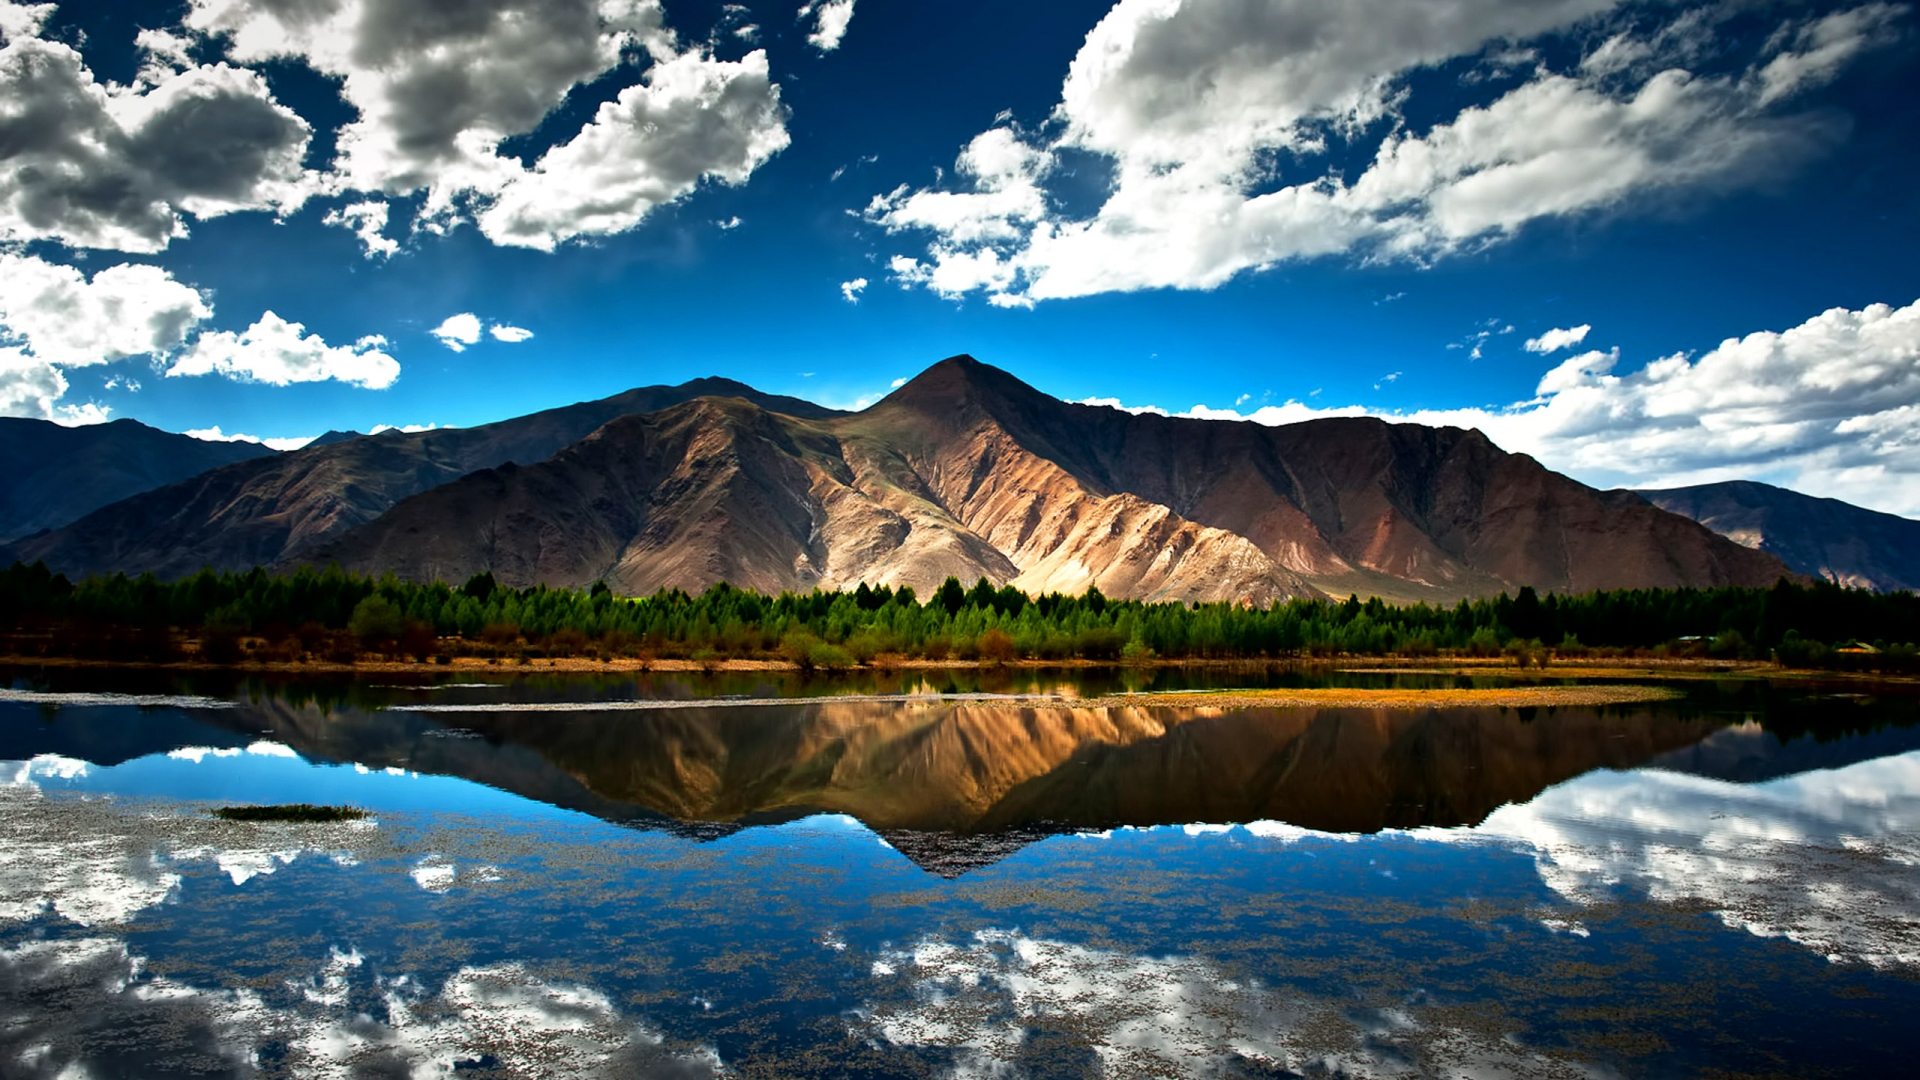 Beautiful Mountains Wallpaper; Fantastic Mountains Wallpaper; Mountains Wallpaper ...